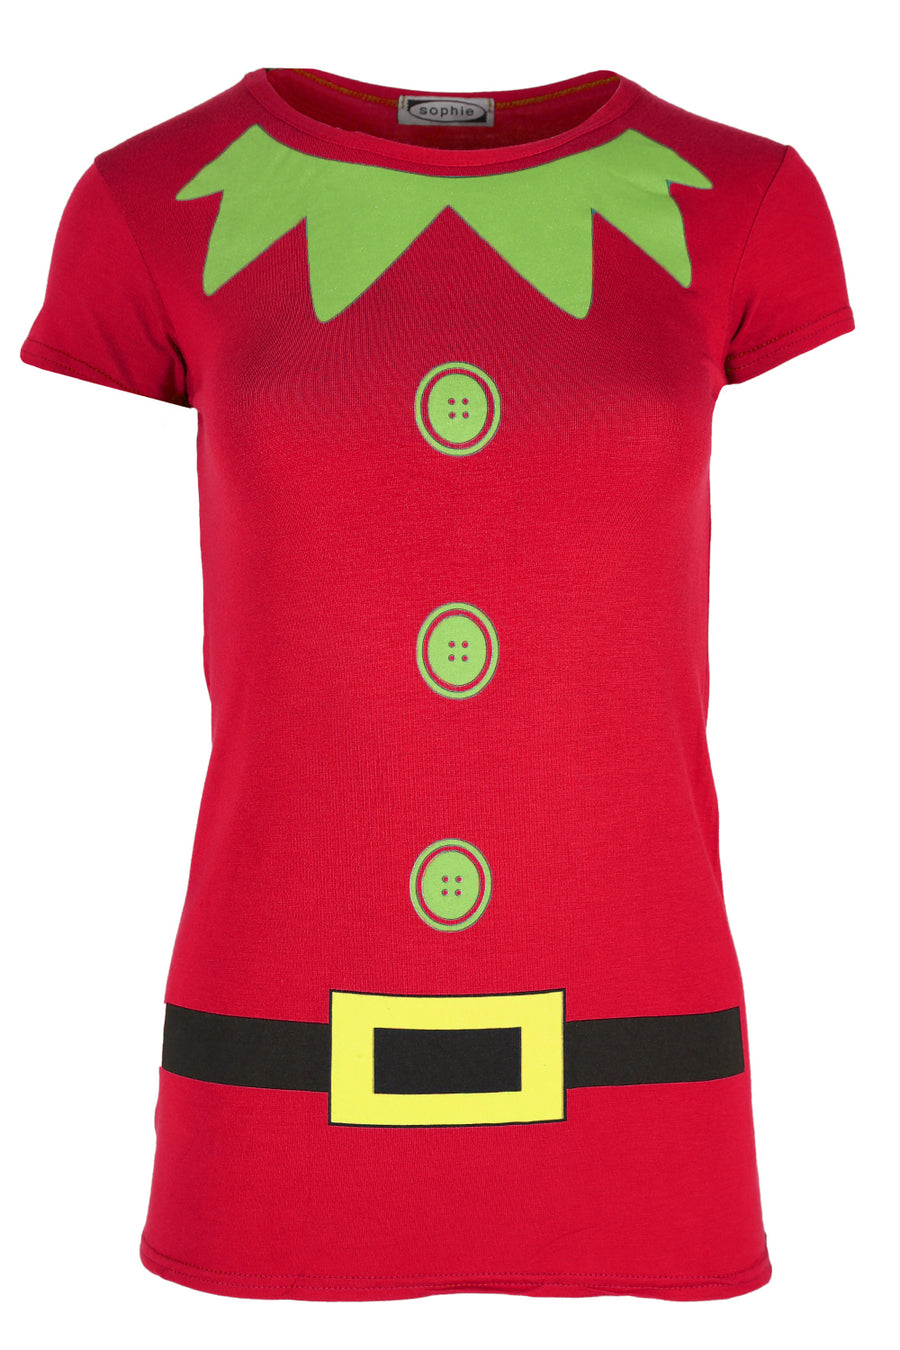 Christmas Elf Costume Short Sleeve Tshirt - bejealous-com